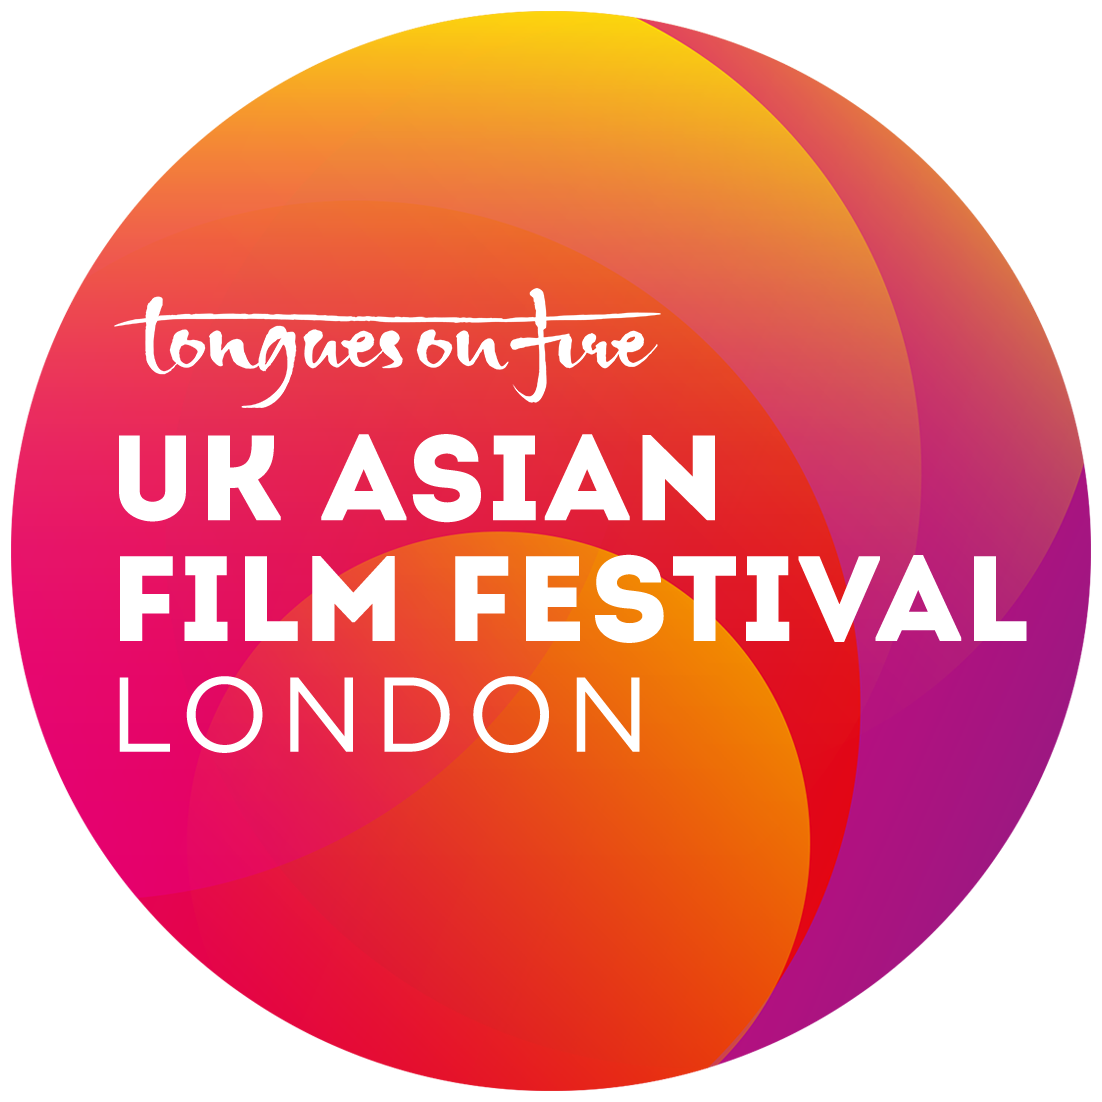 The UK Asian Film Festival